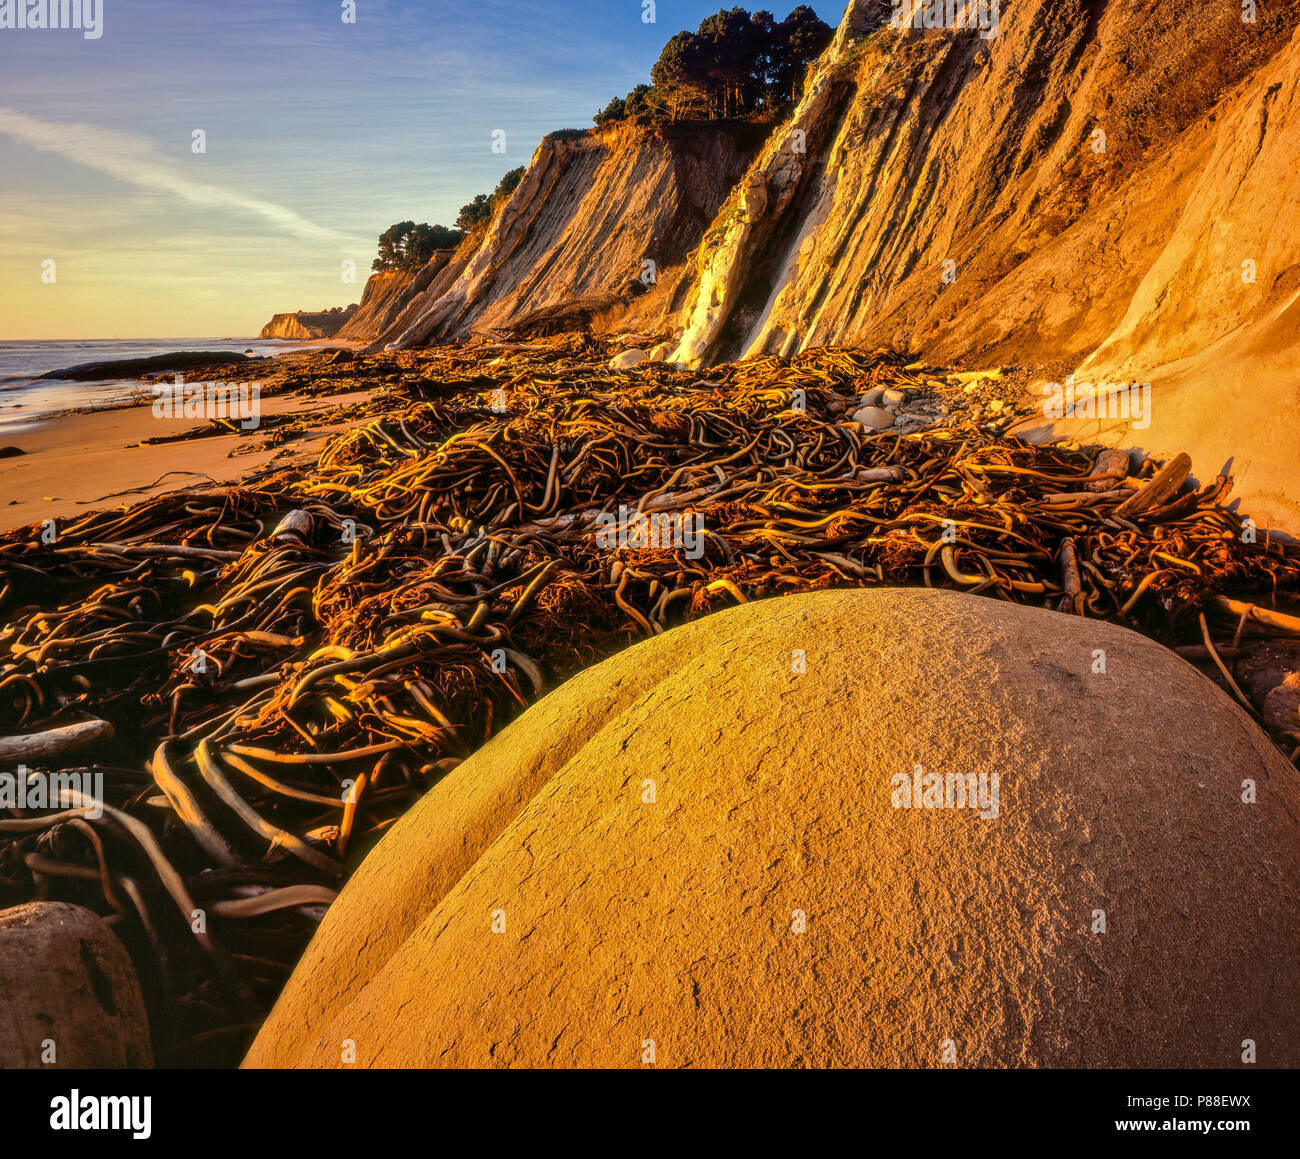 Bowling Ball Beach, Schooner Gulch State Beach, Coastline, Mendocino County, California - Stock Image